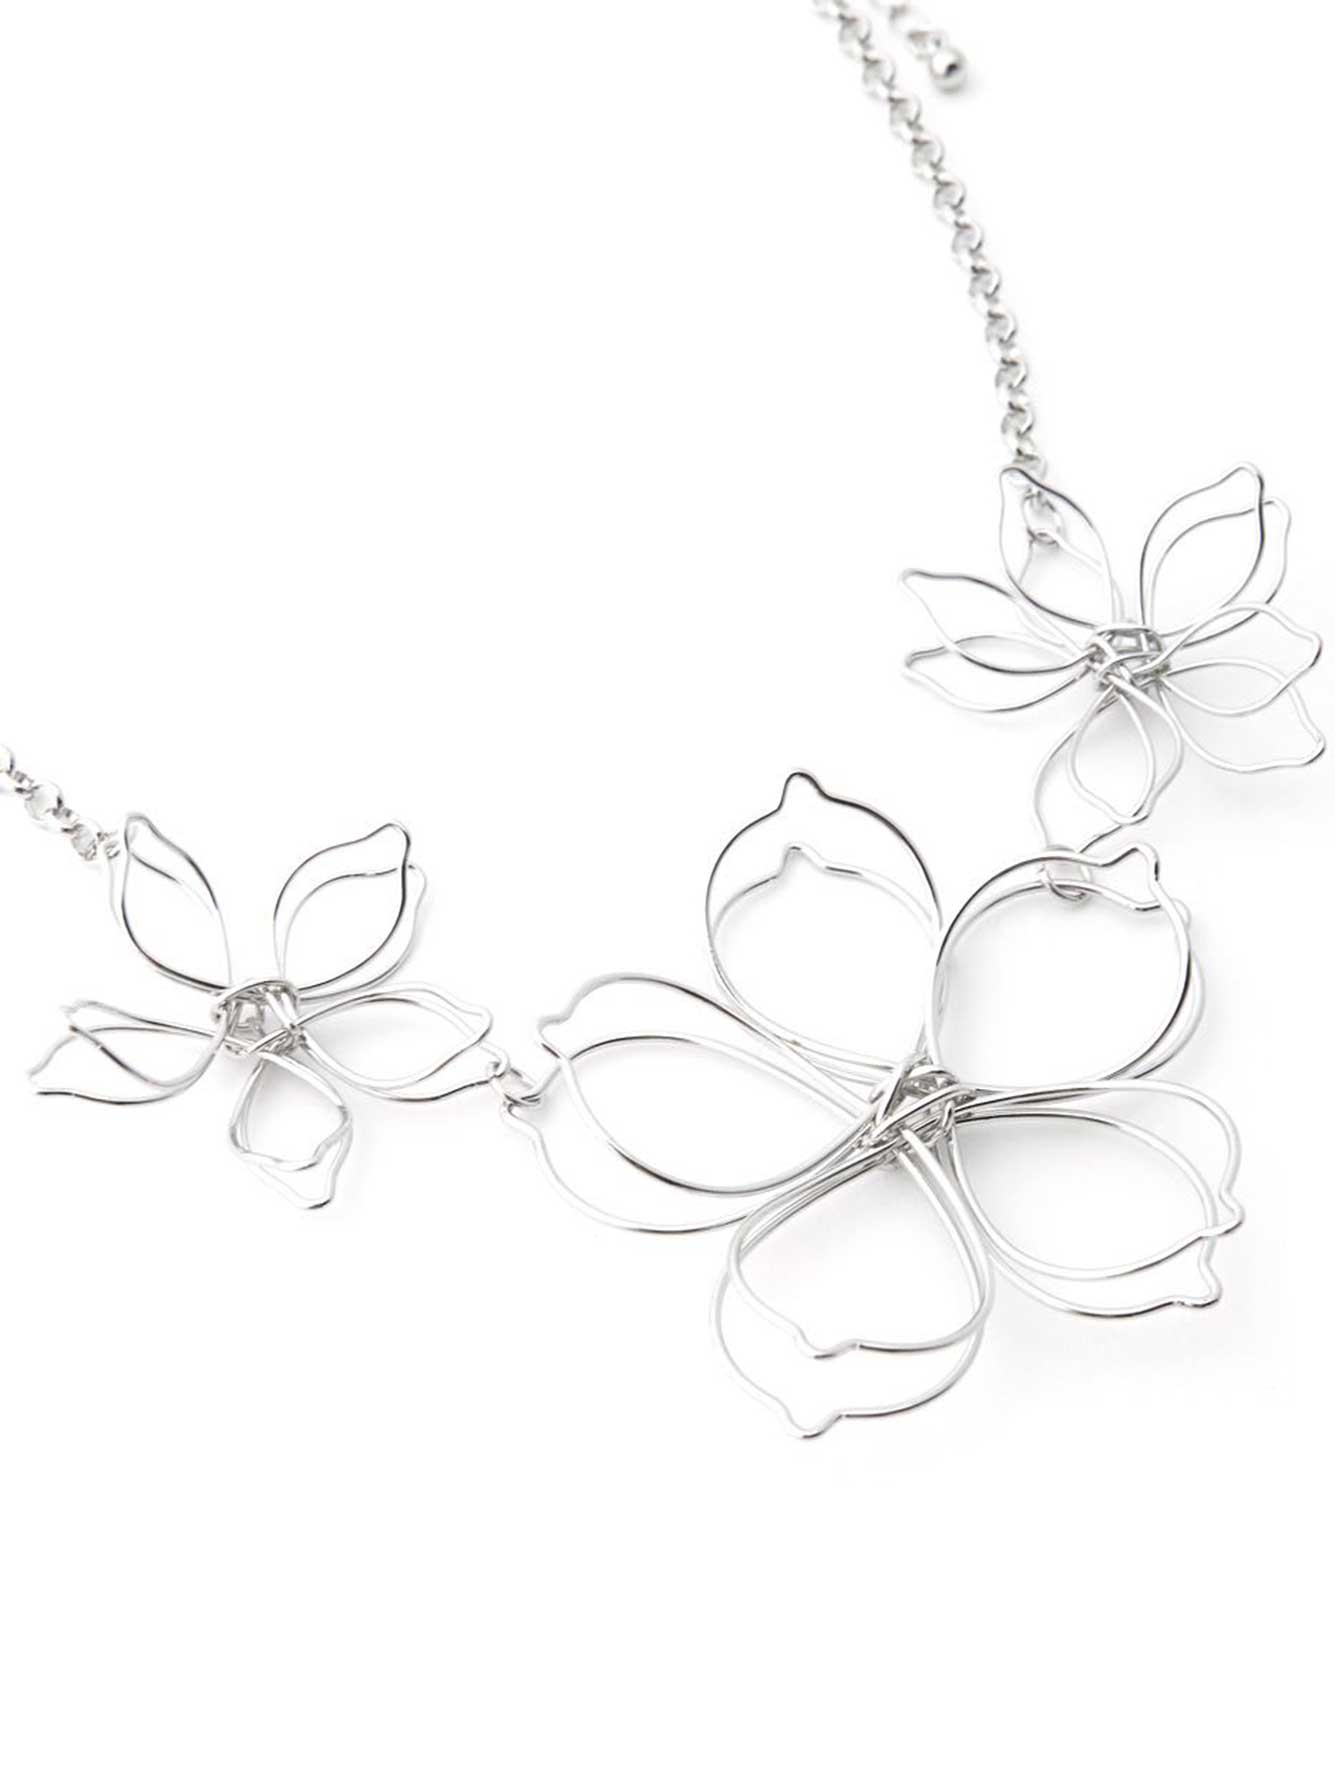 rose blossom media floral jewelry metal set flower silver bridal crystal necklace gold wedding